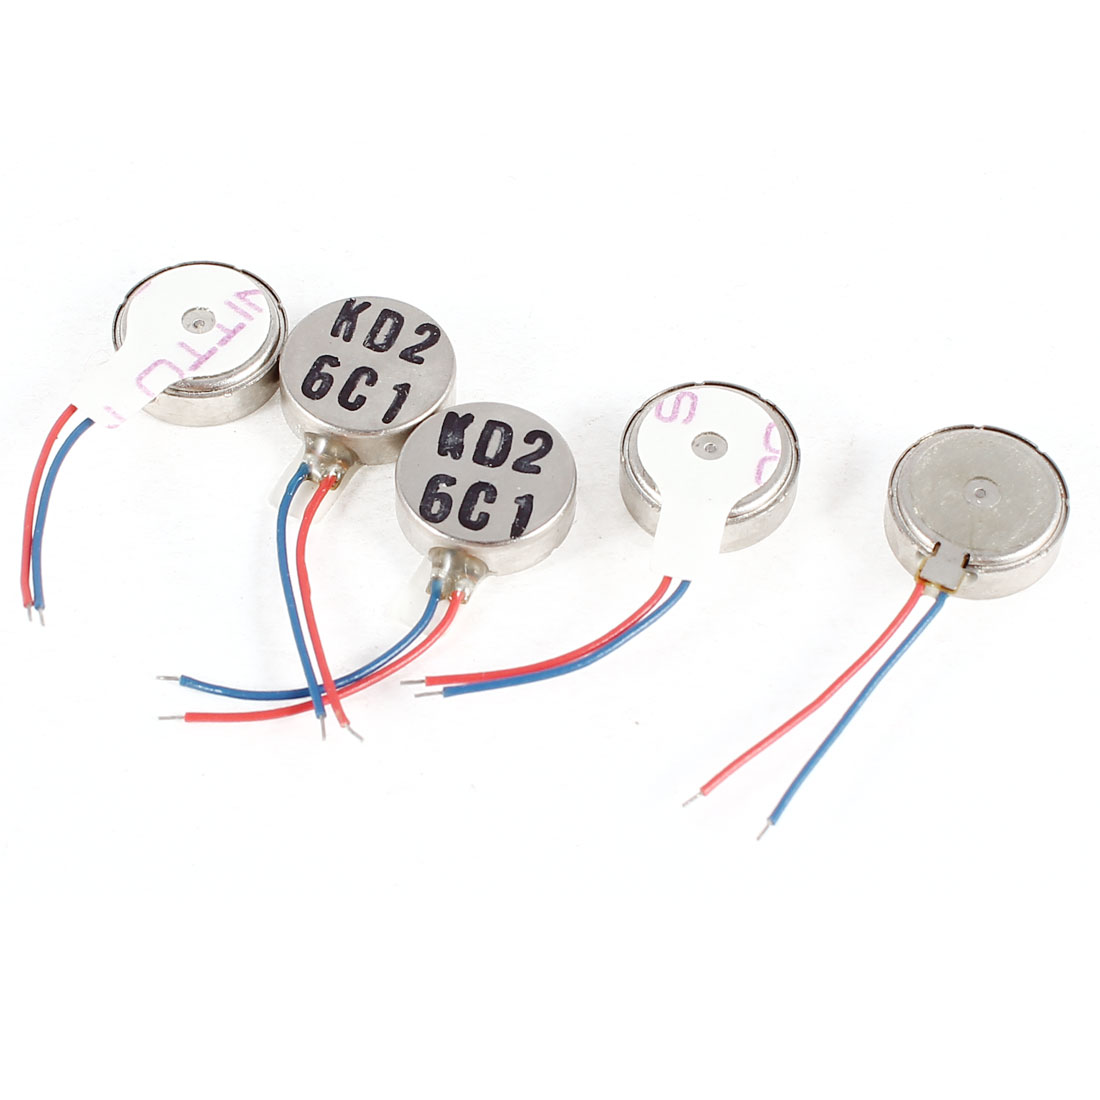 5-Pcs-DC-3V-10mm-x-3-6mm-1034-Cell-Phone-Coin-Flat-Vibrating-Vibration-Motor